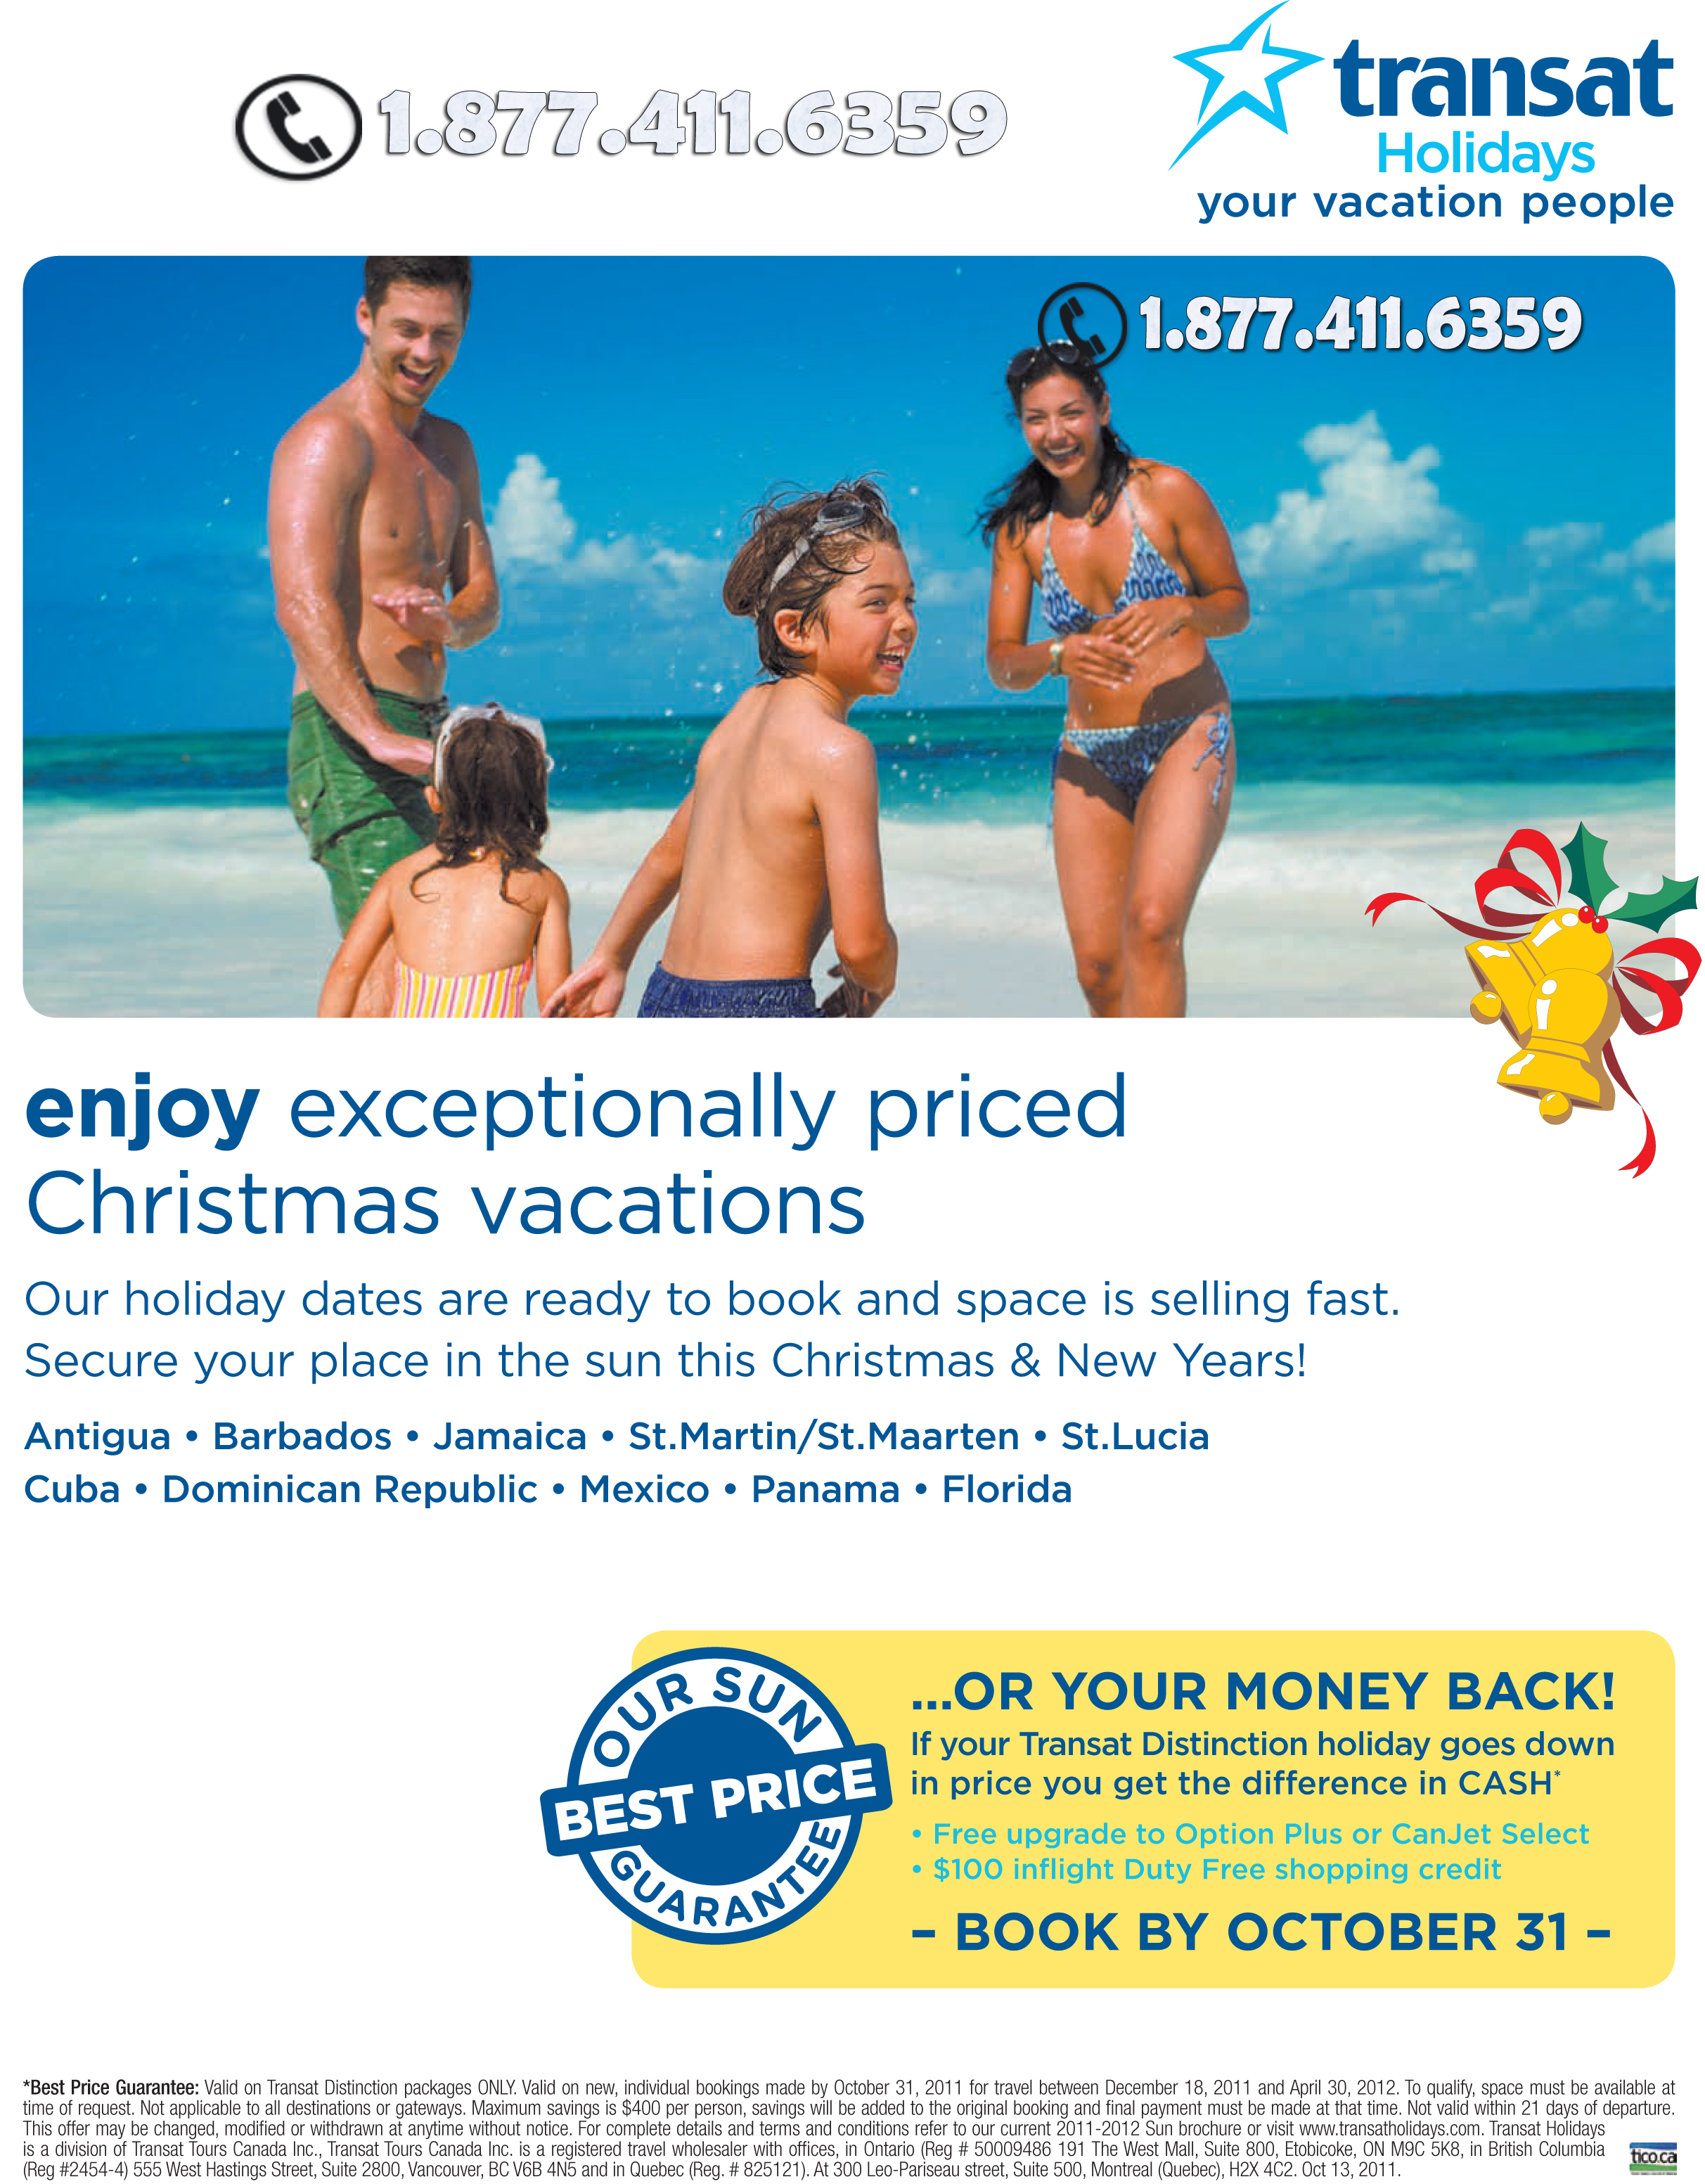 Transat Holidays Christmas Deals